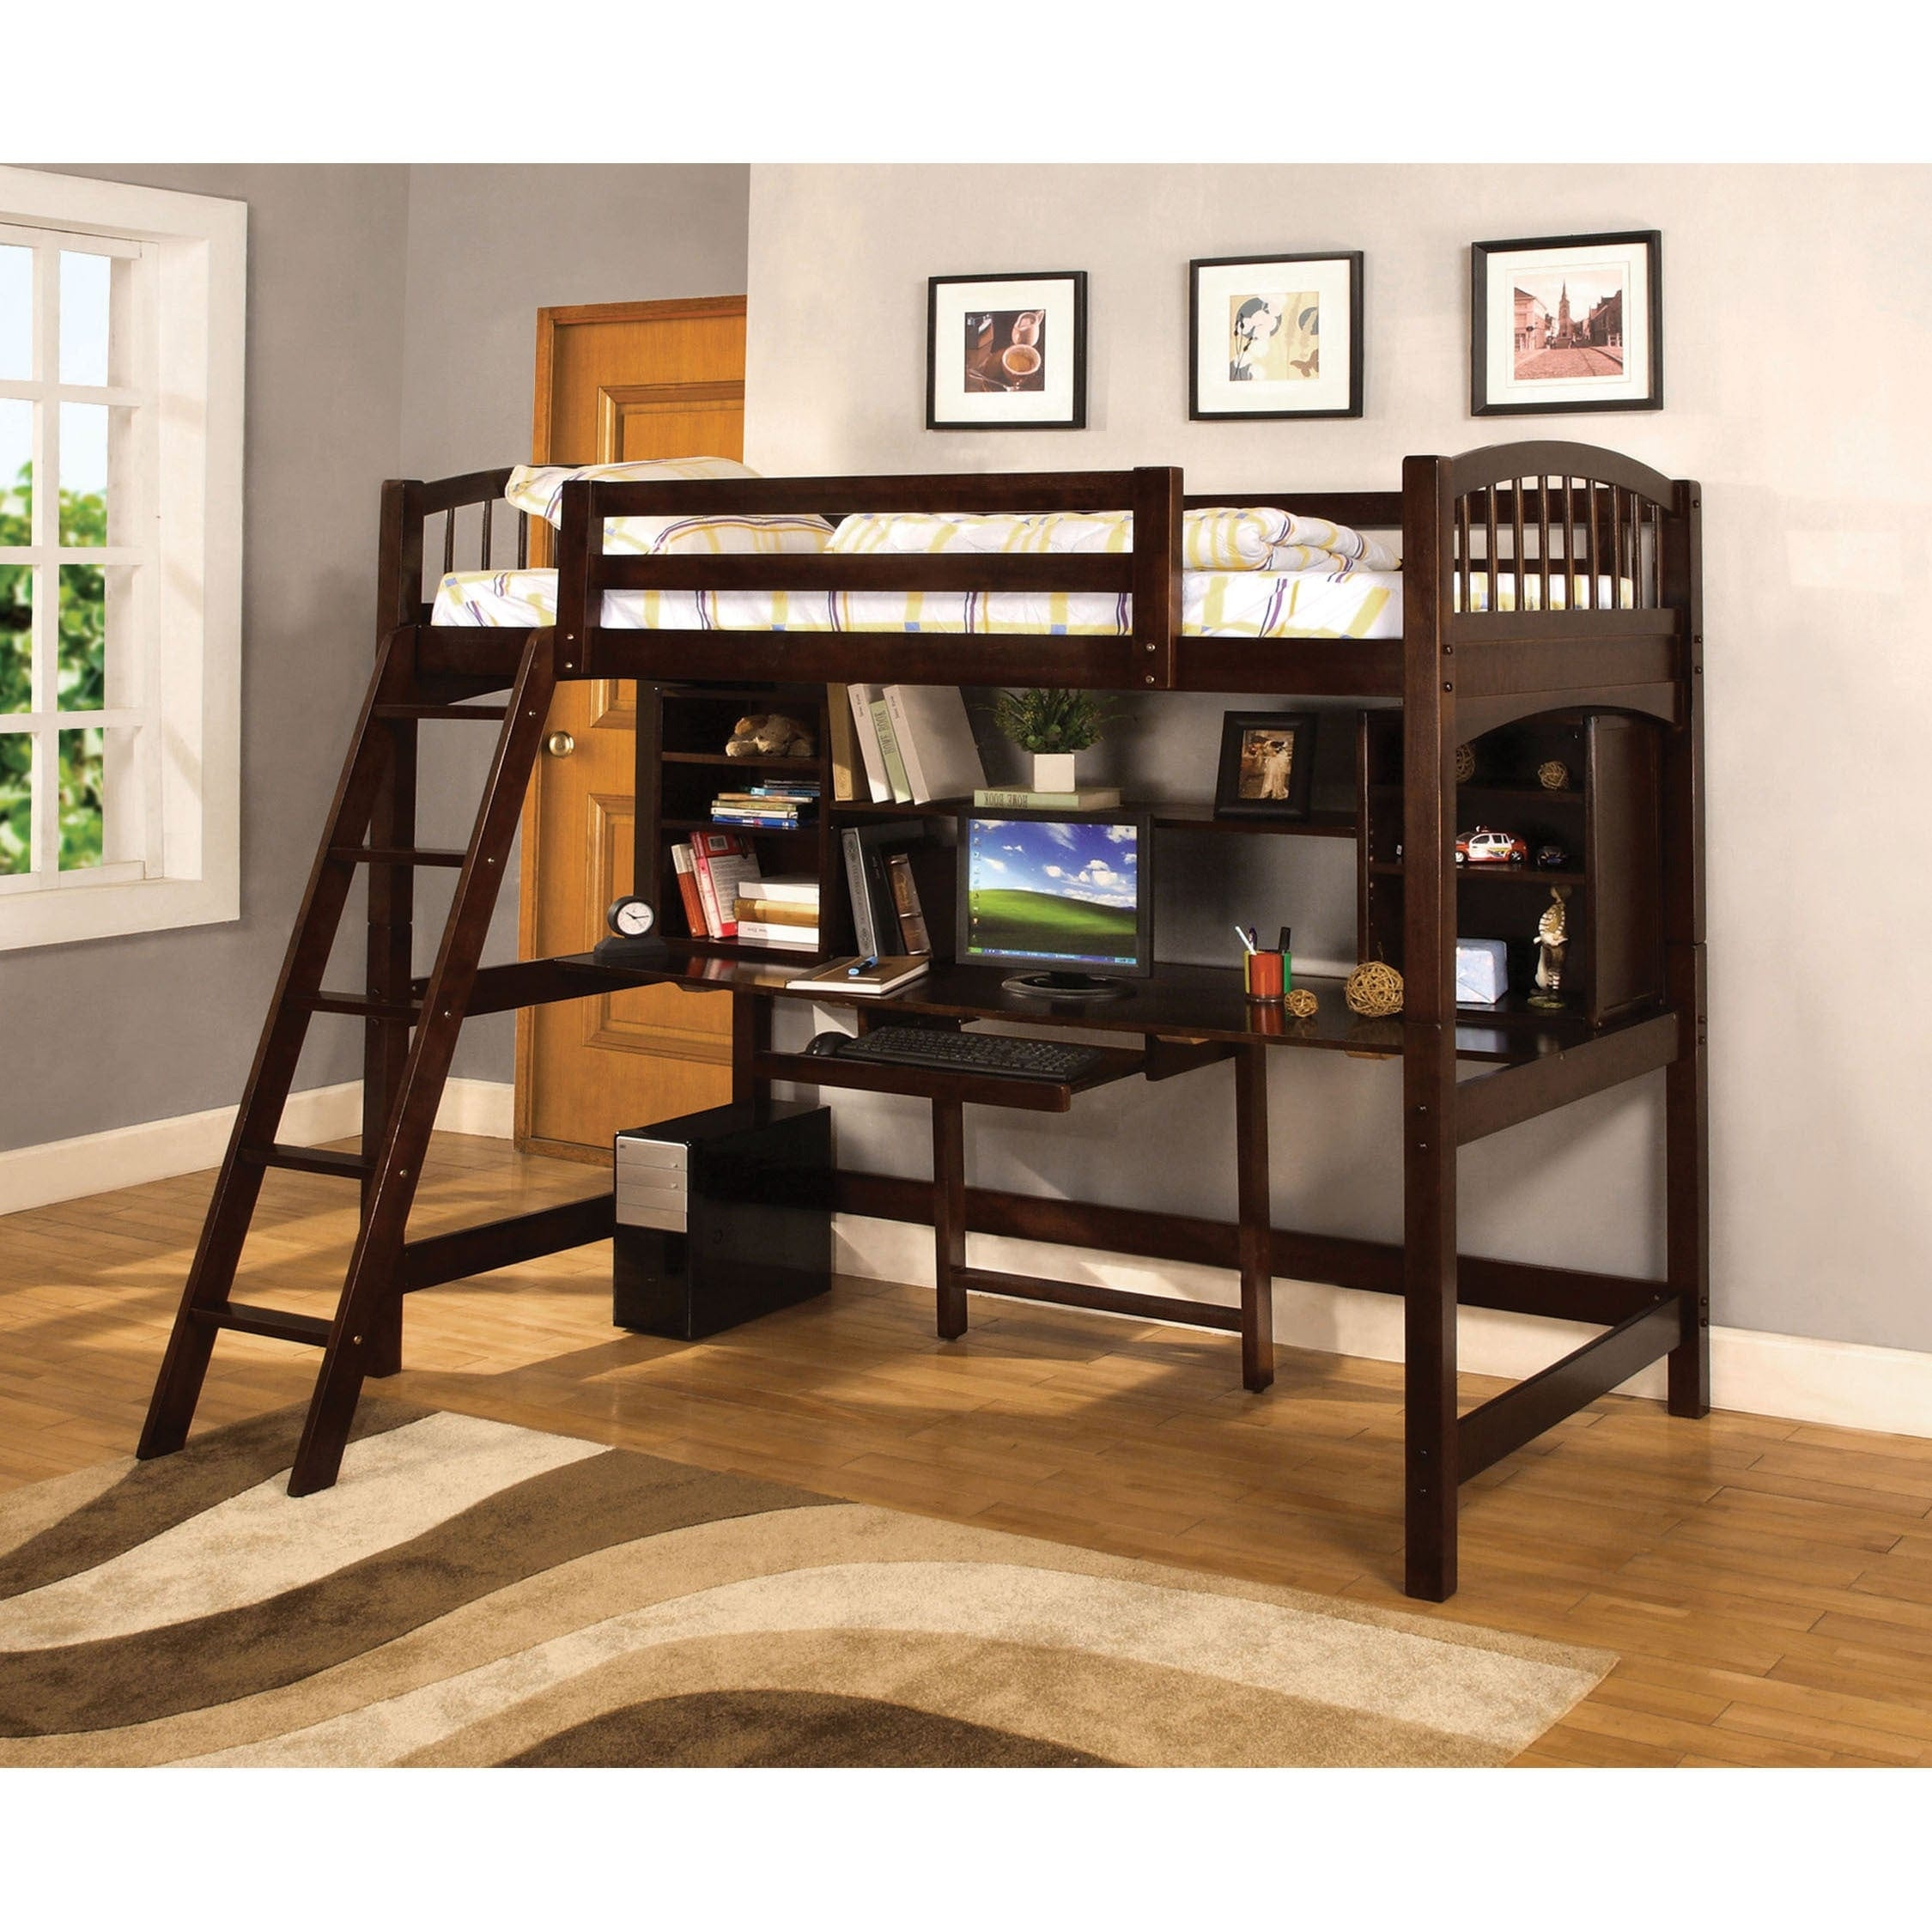 Furniture Of America Fila Modern Espresso Twin Loft Bed With Workstation On Sale Overstock 9378138